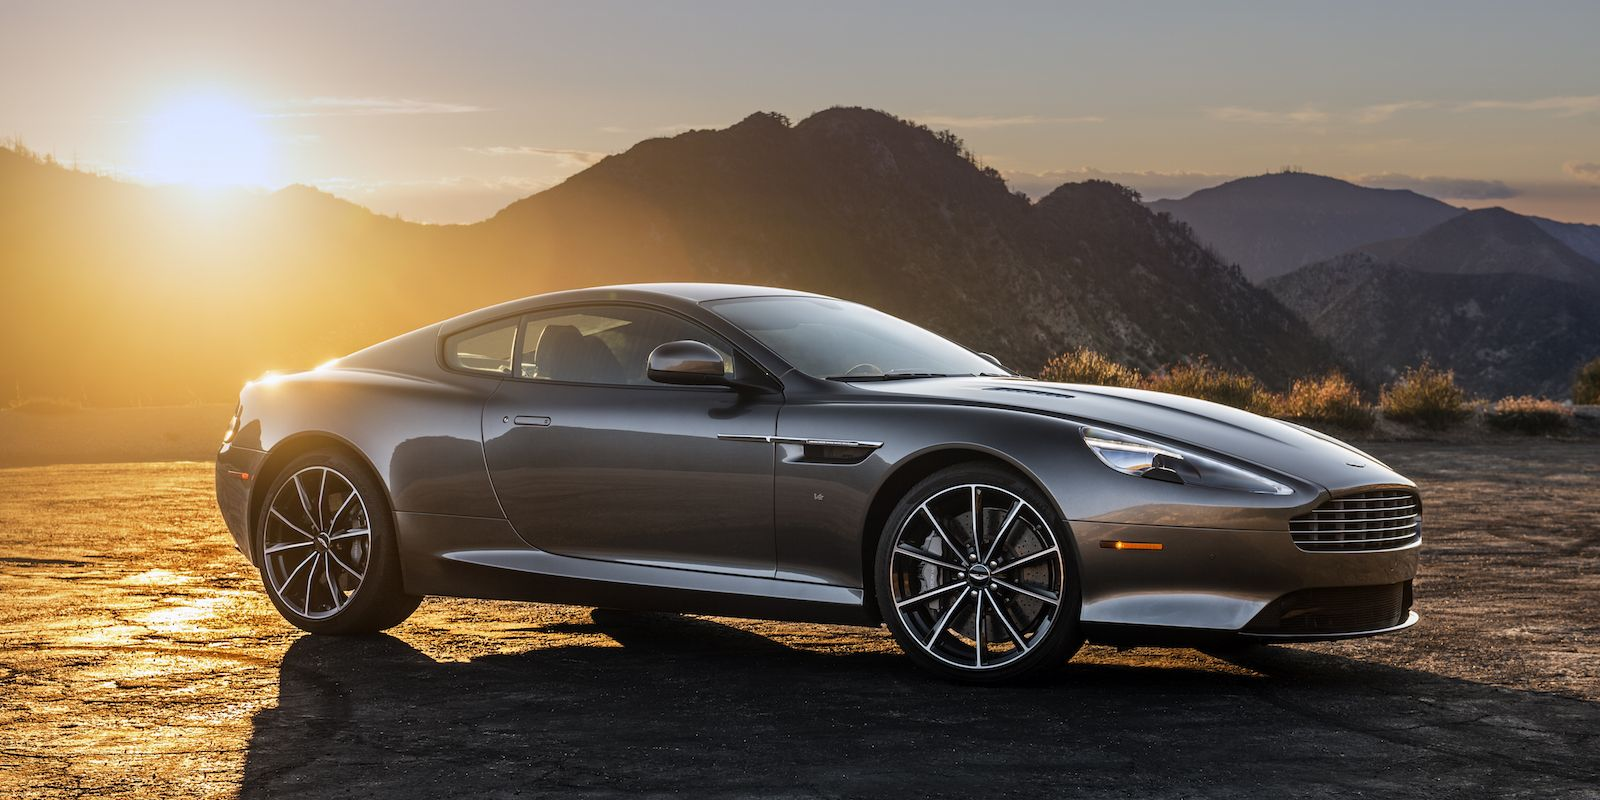 Aston Martin DB9 The LongLived Savior of the Brand Ends Production